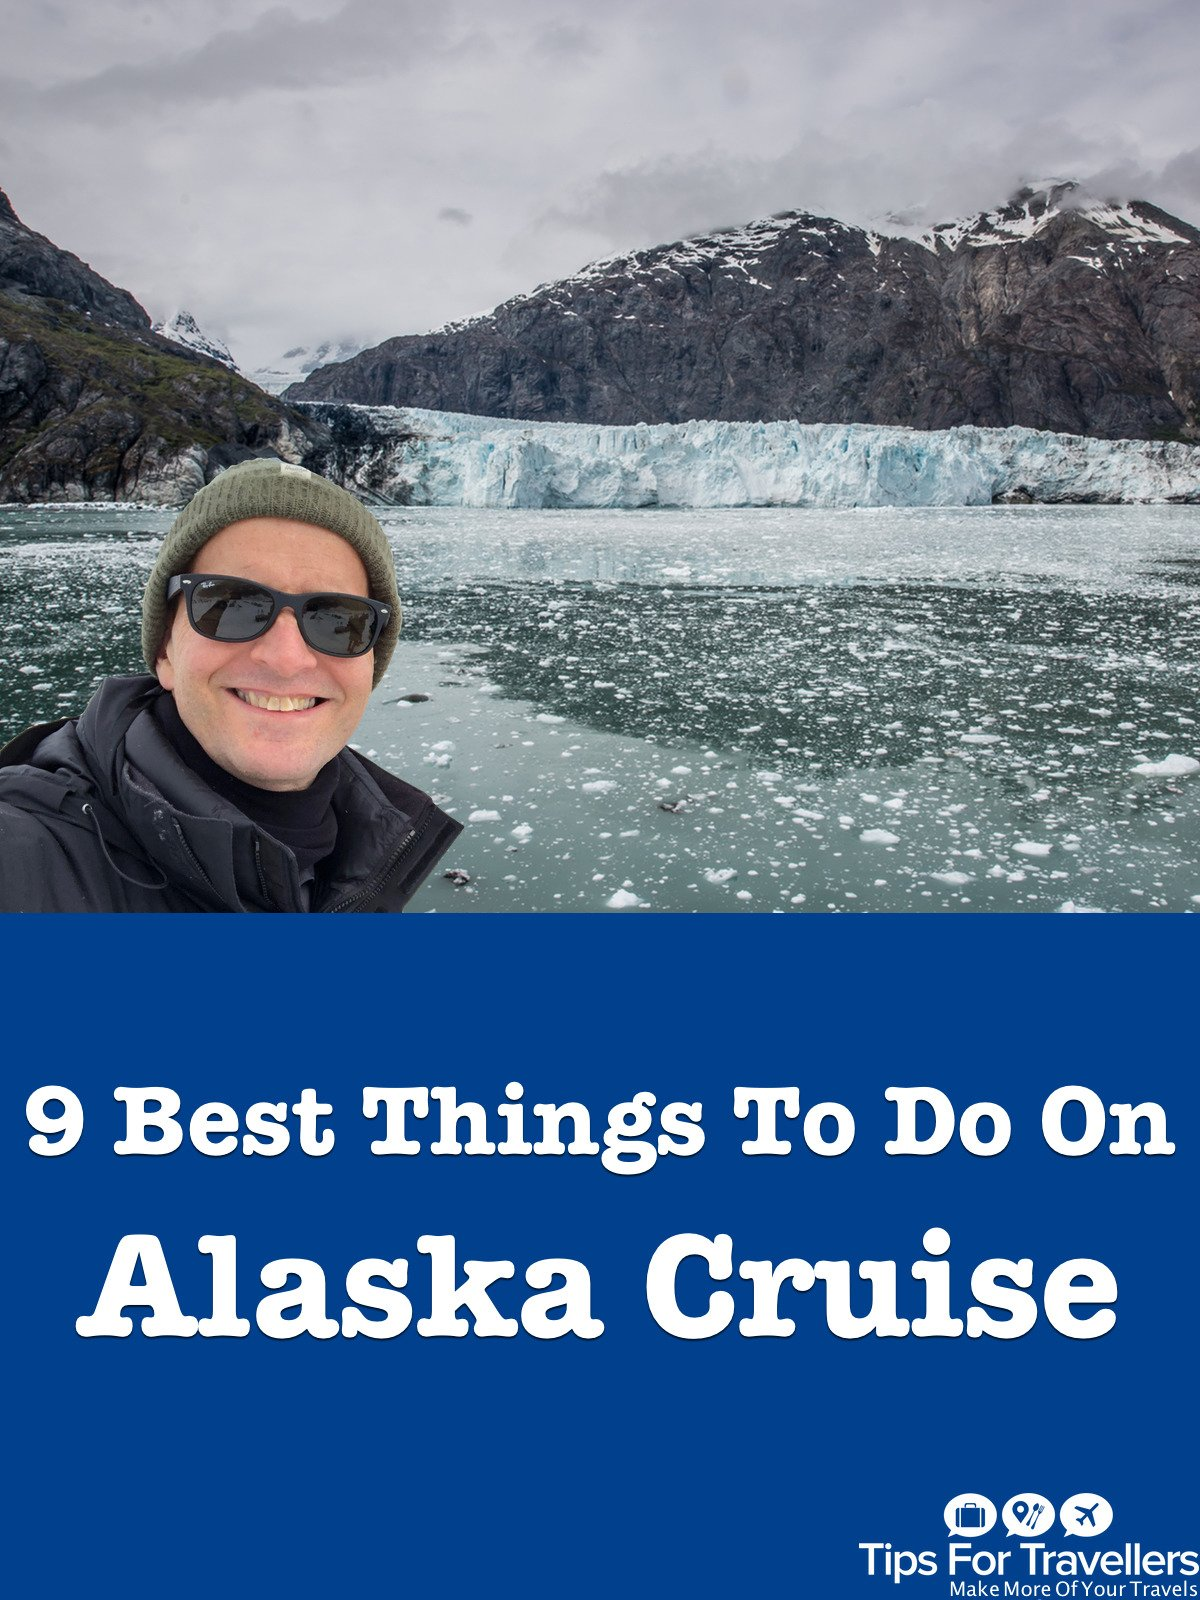 Clip: 9 Best Things To Do On Alaska Cruise